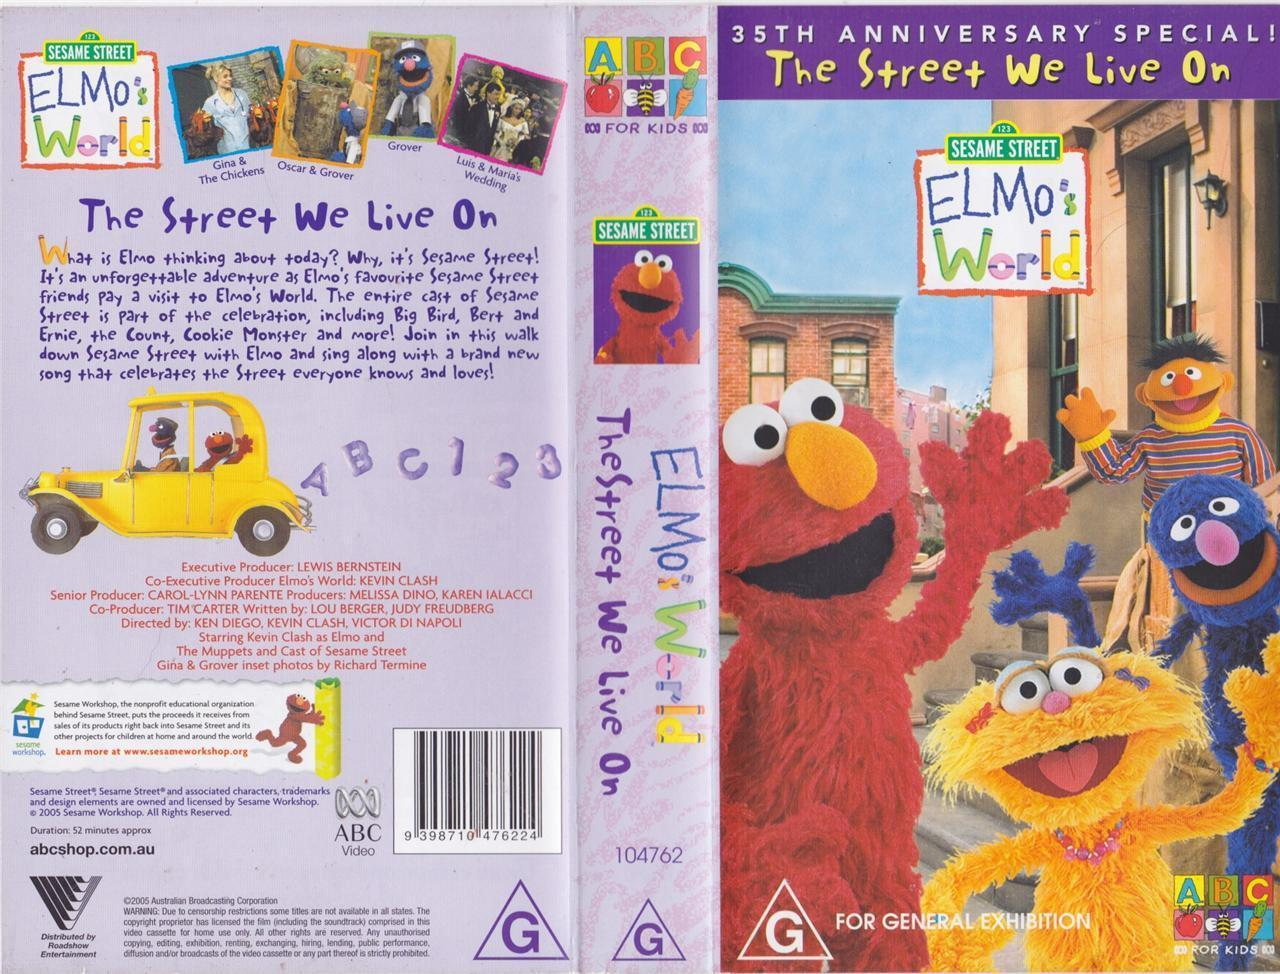 We Live In An Age Of Universal Investigation And Of: Opening To Elmo's World: The Street We Live On 2005